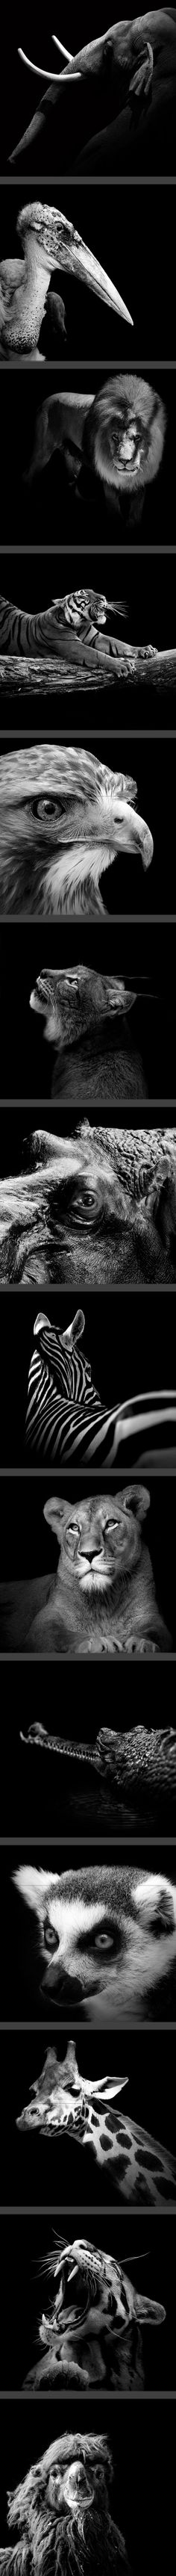 Portraits of Animals by Lukas Holas